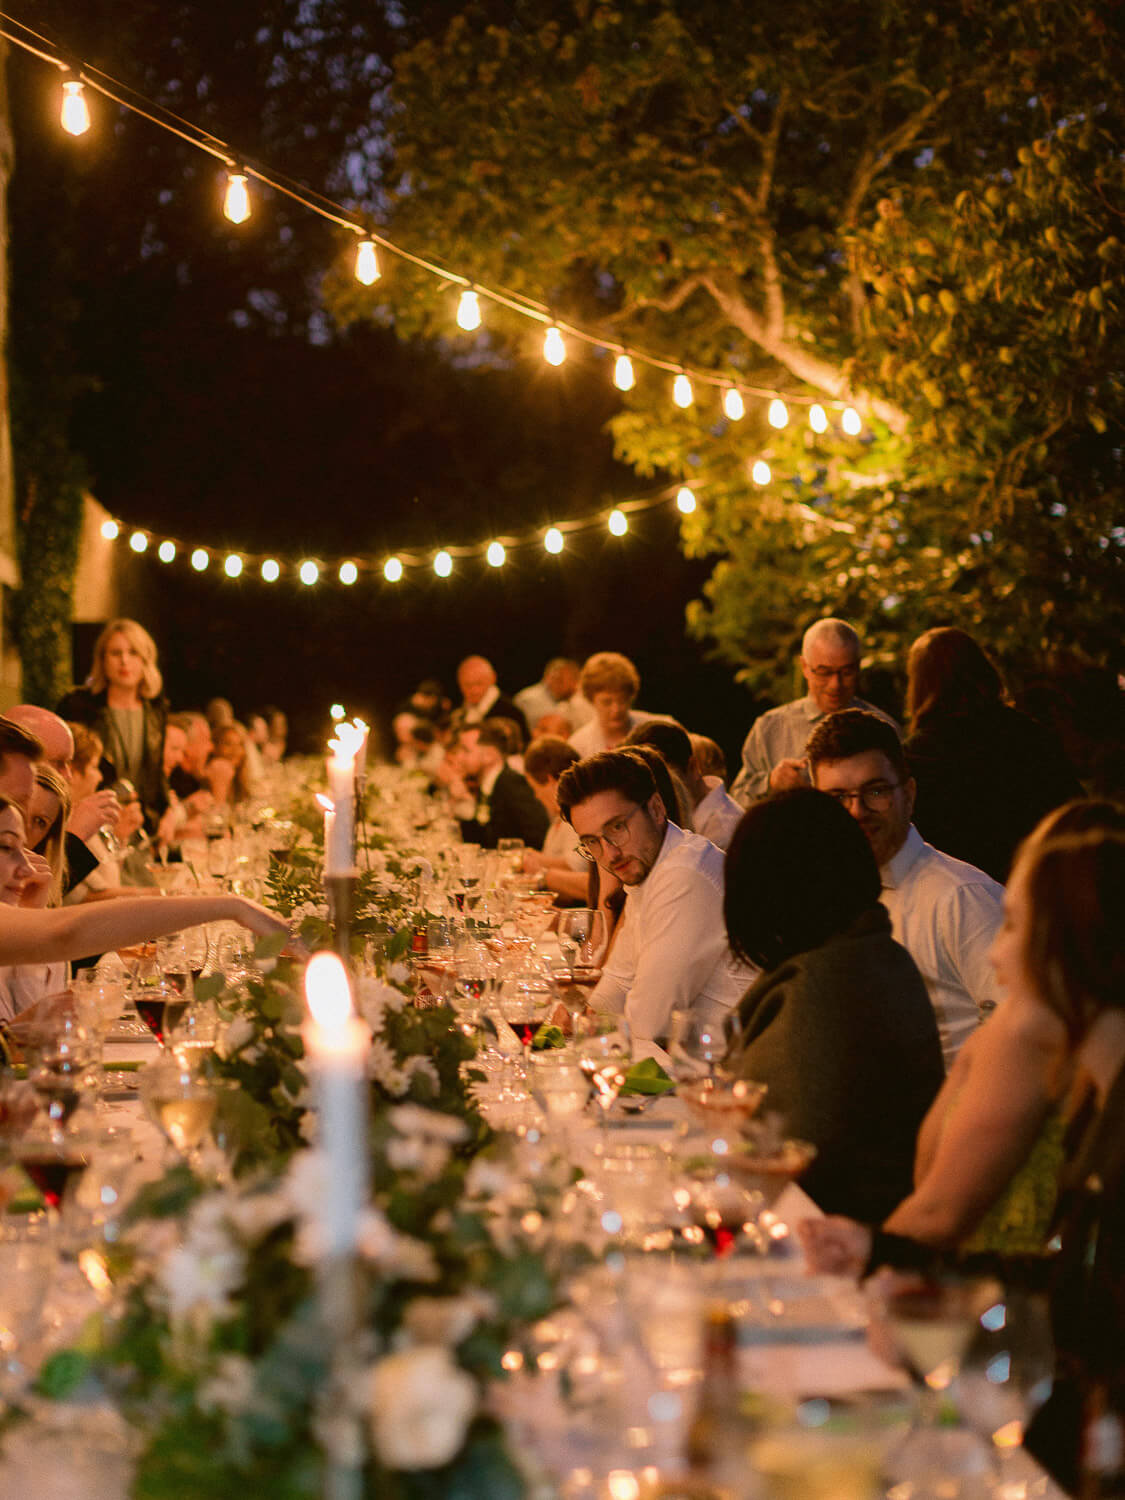 night view of long outdoor reception table and festival lights by Portugal Wedding Photographer